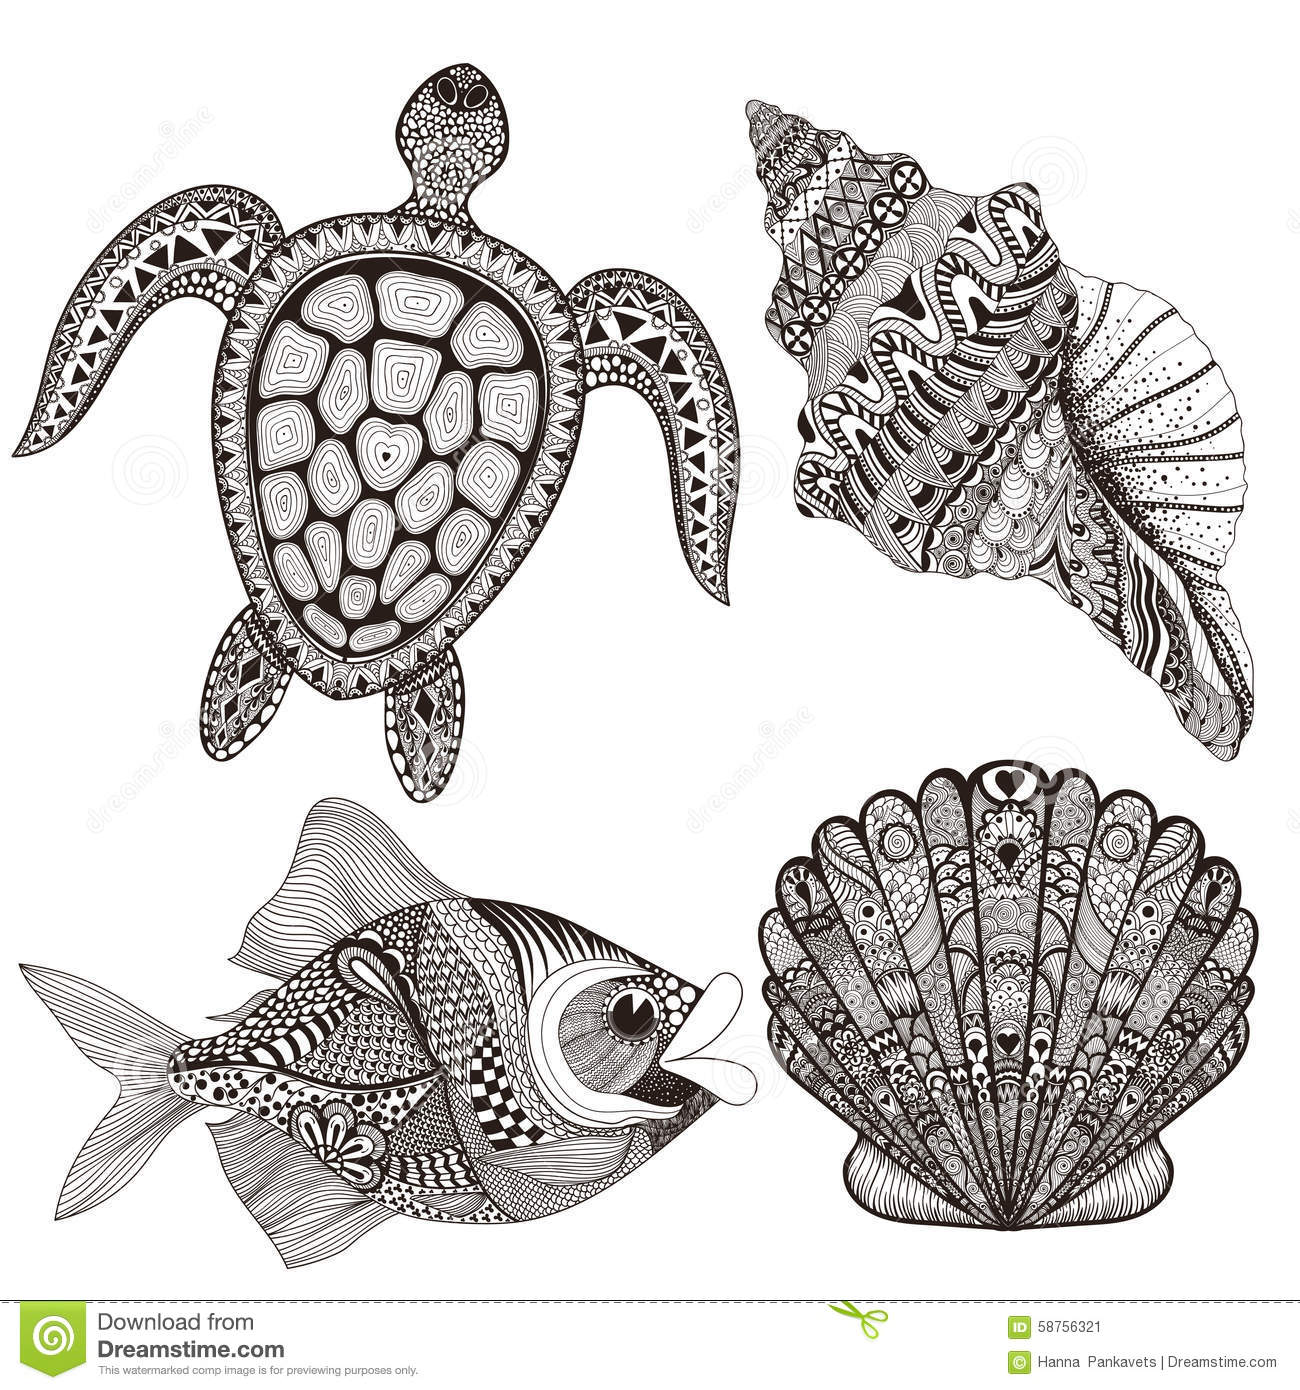 3c5bd9cd2 Zentangle stylized black sea shells, fish and turtle. Hand Drawn doodle  vector illustration. Sketch for tattoo or makhenda. Seal collection. Ocean  life set.